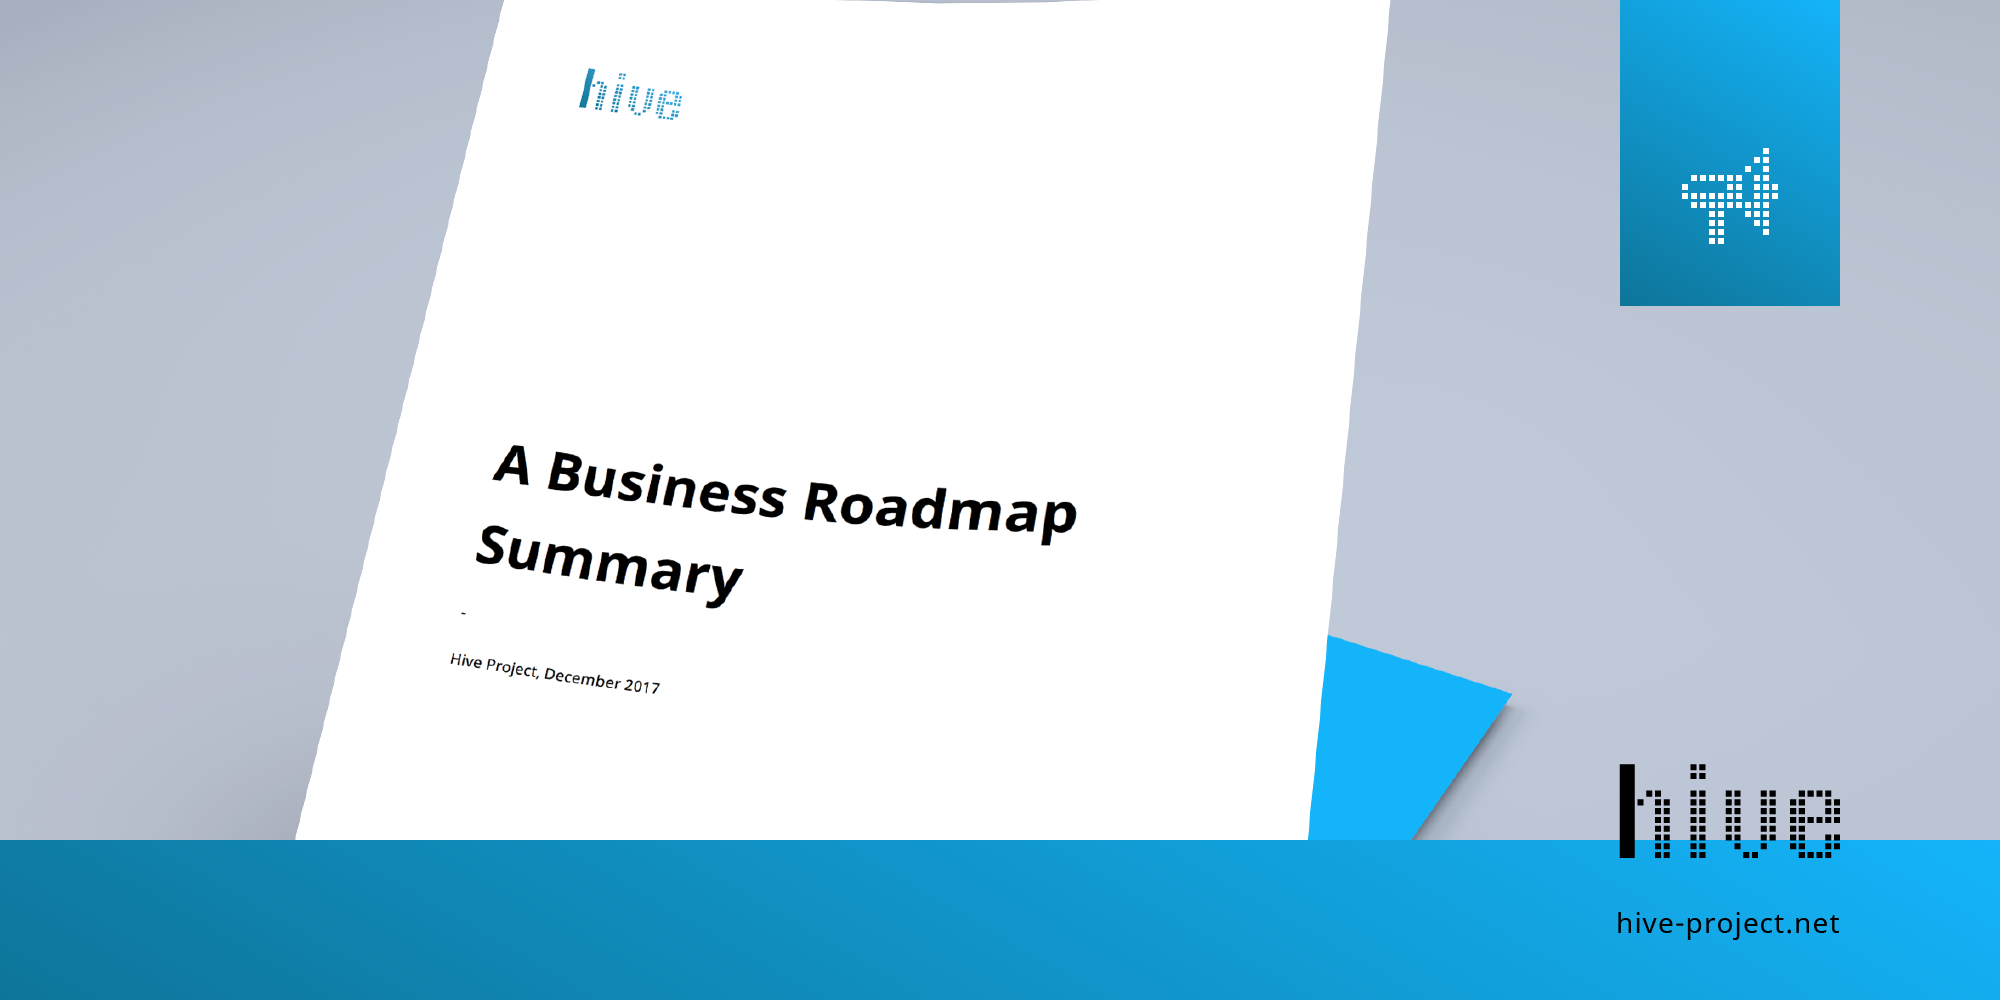 Hvn business roadmap summary a blueprint for our long term success hvn business roadmap summary a blueprint for our long term success malvernweather Choice Image